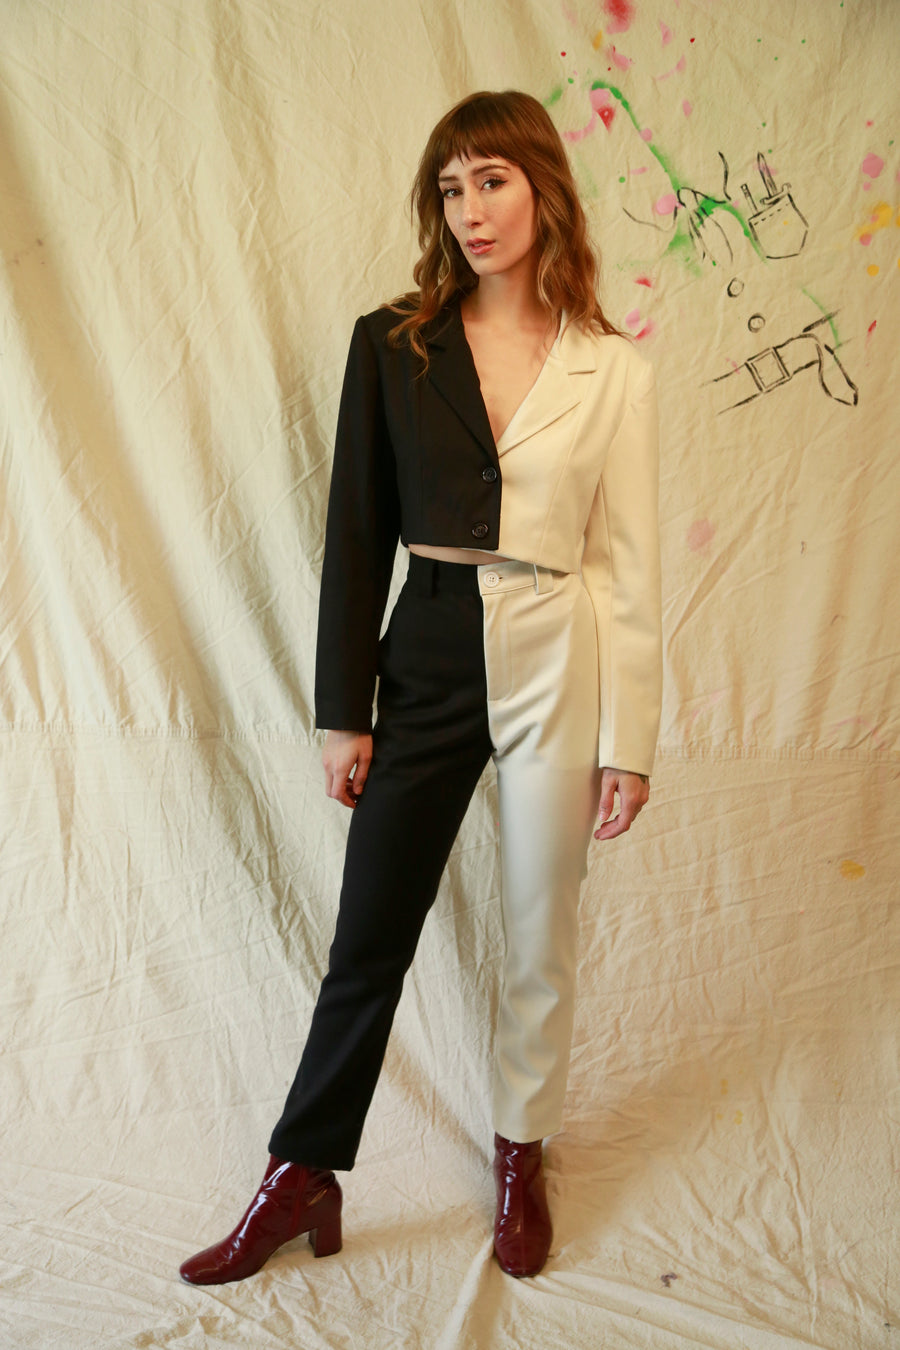 Black and White Two Tone Trousers